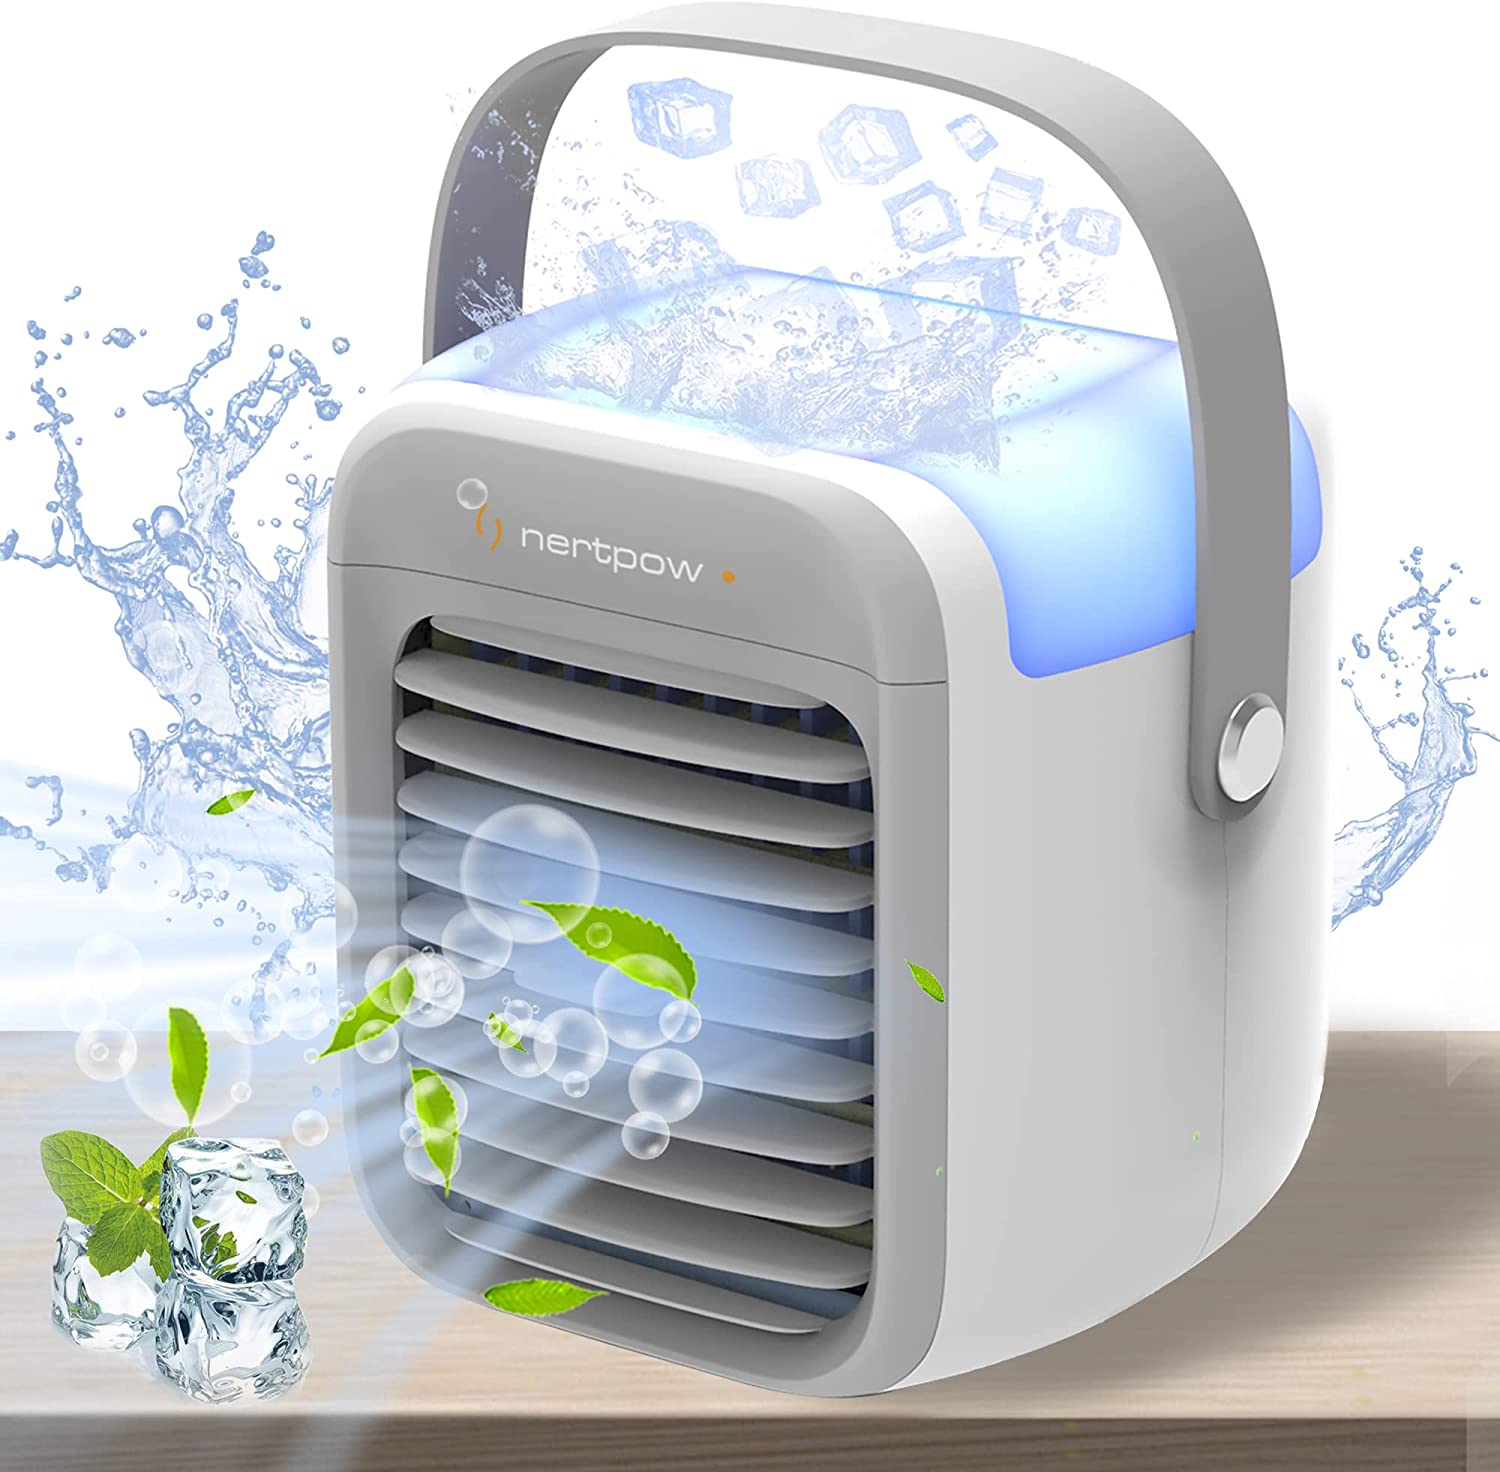 Nertpow Portable Air Conditioner, Portable Cooler, Quick & Easy Way to Cool Personal Space, As Seen On TV, Suitable for Bedside, Office and Study Room. Three Wind Level Adjustment ……